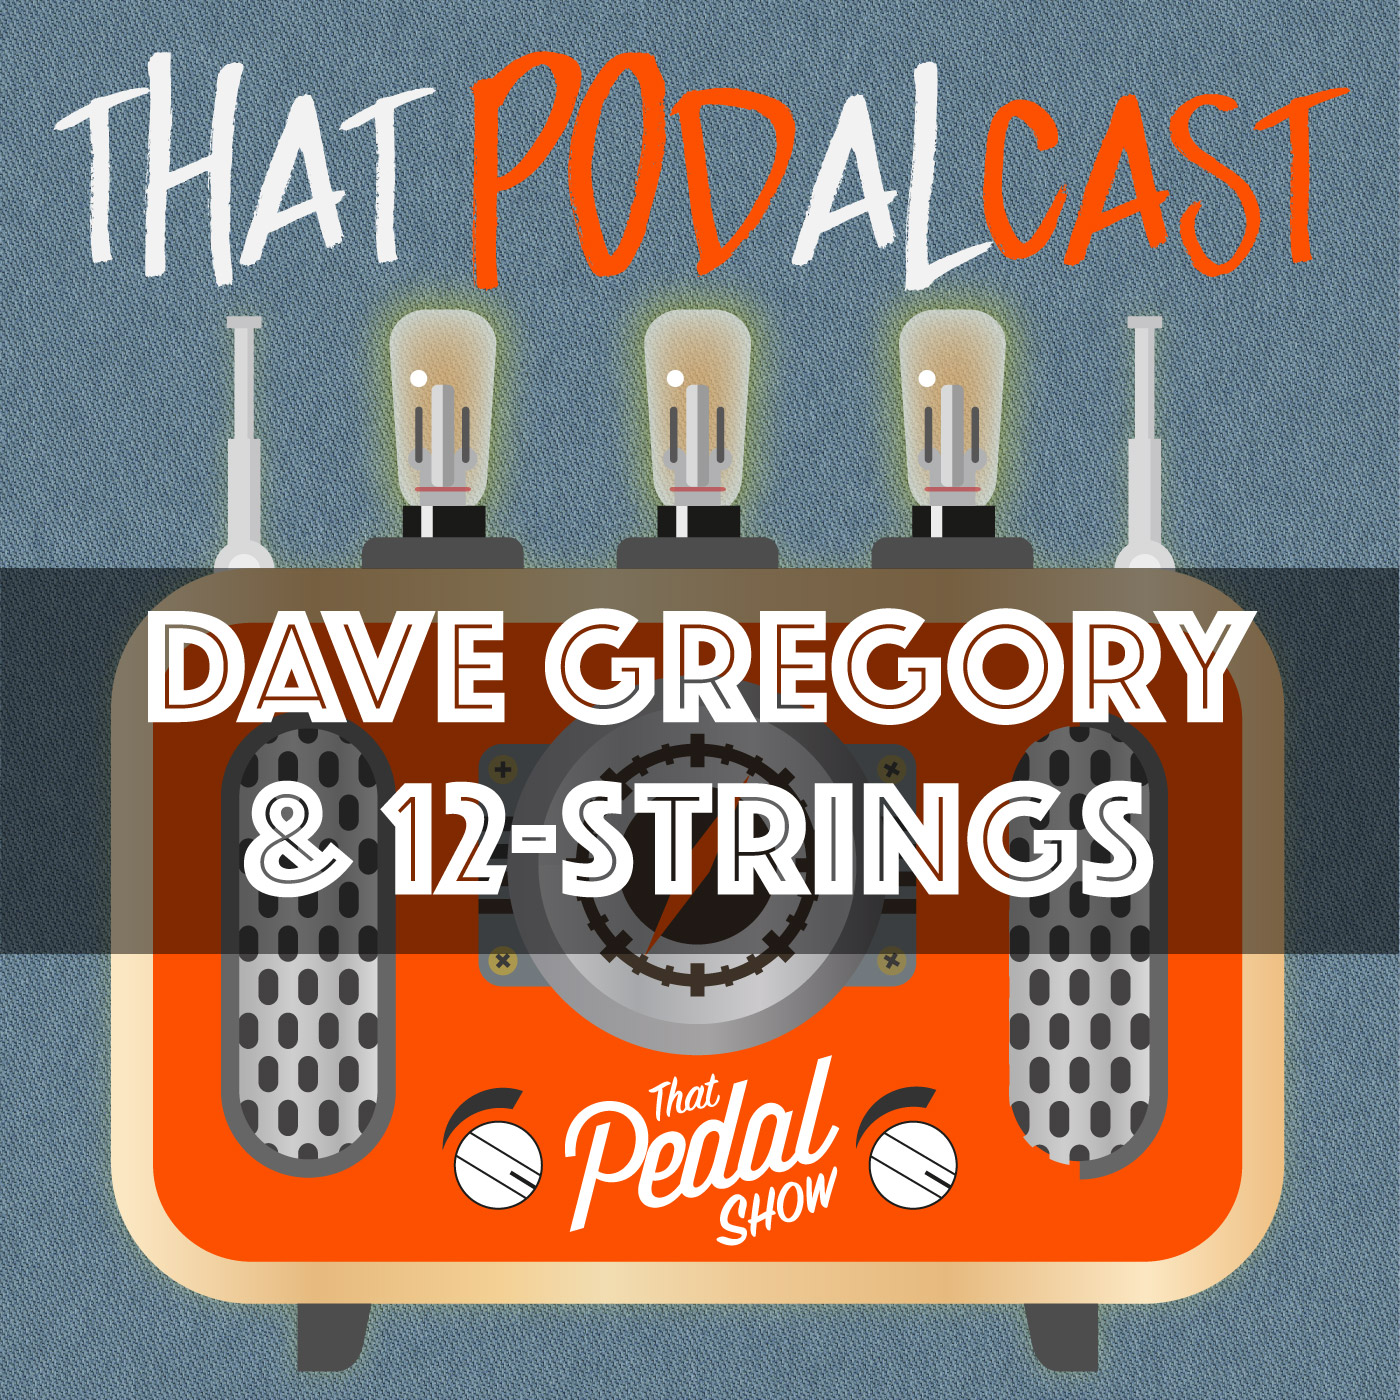 Dave Gregory: 12 Strings, XTC & More!